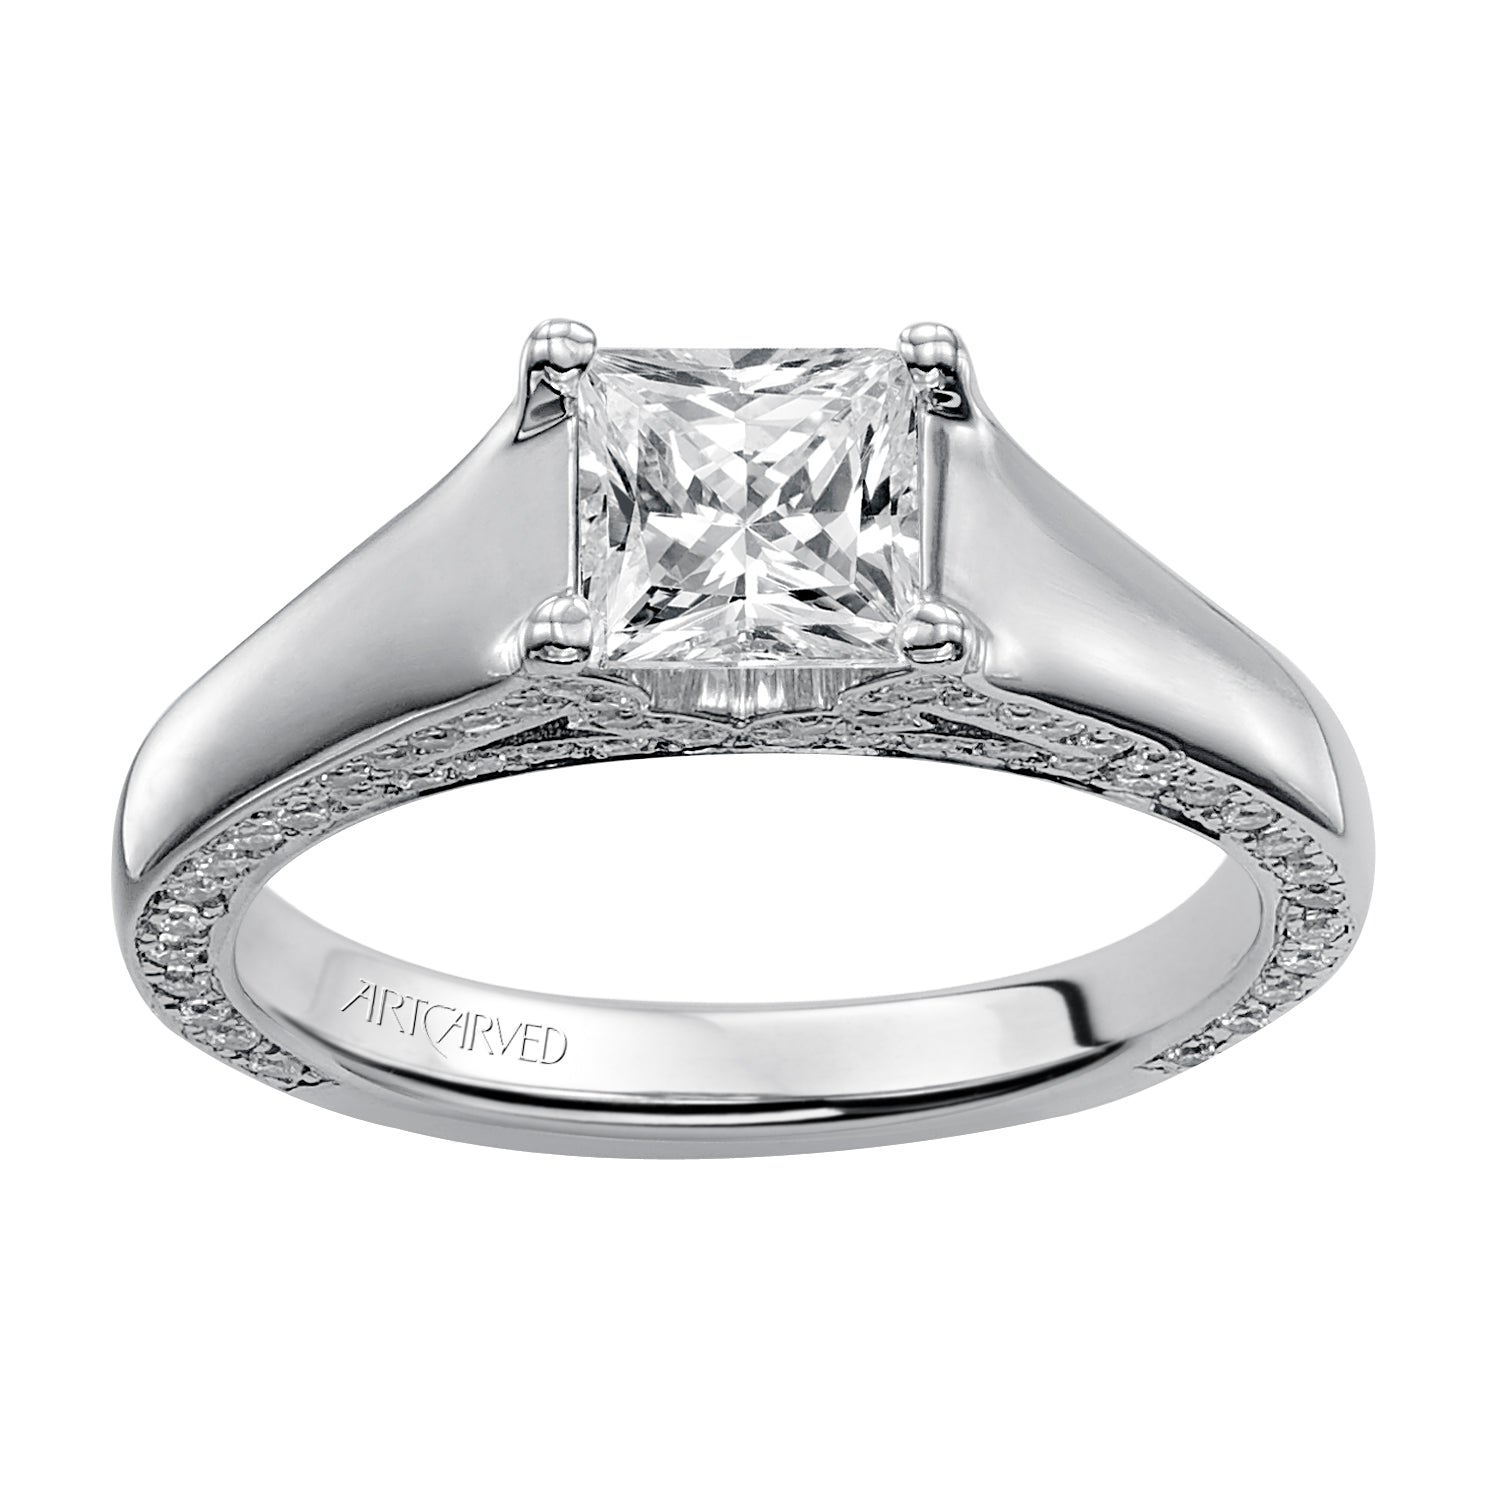 jewelers diamond s ring blog dsc rings newsletter accent product our engagement dale receive